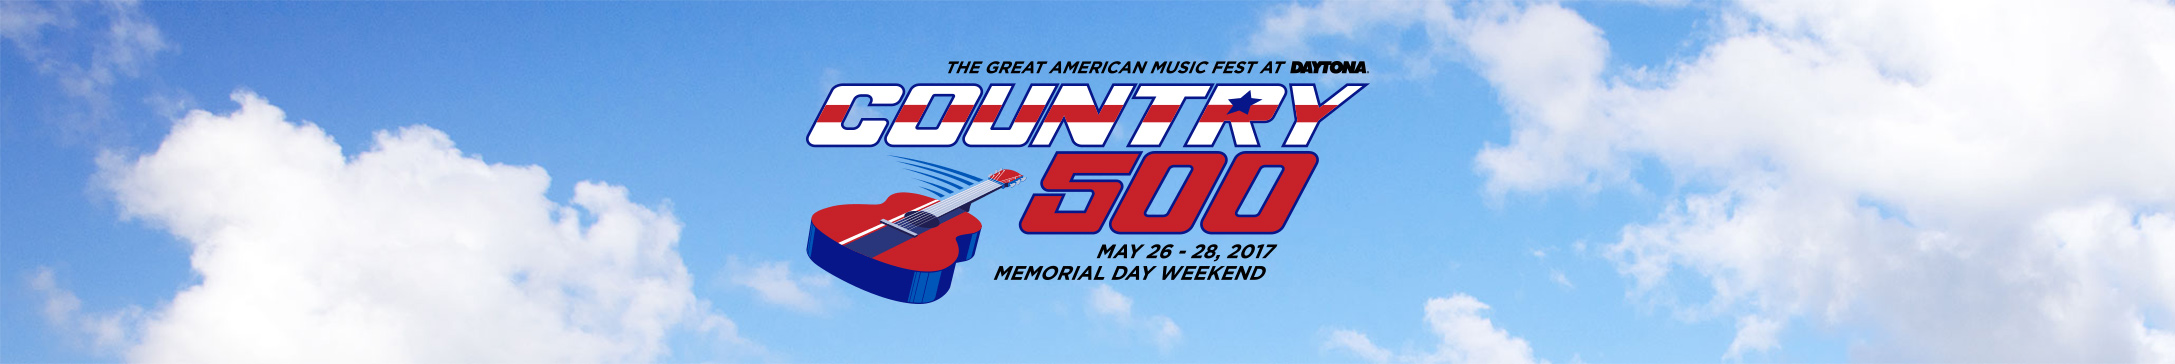 Country 500 Festival 2017